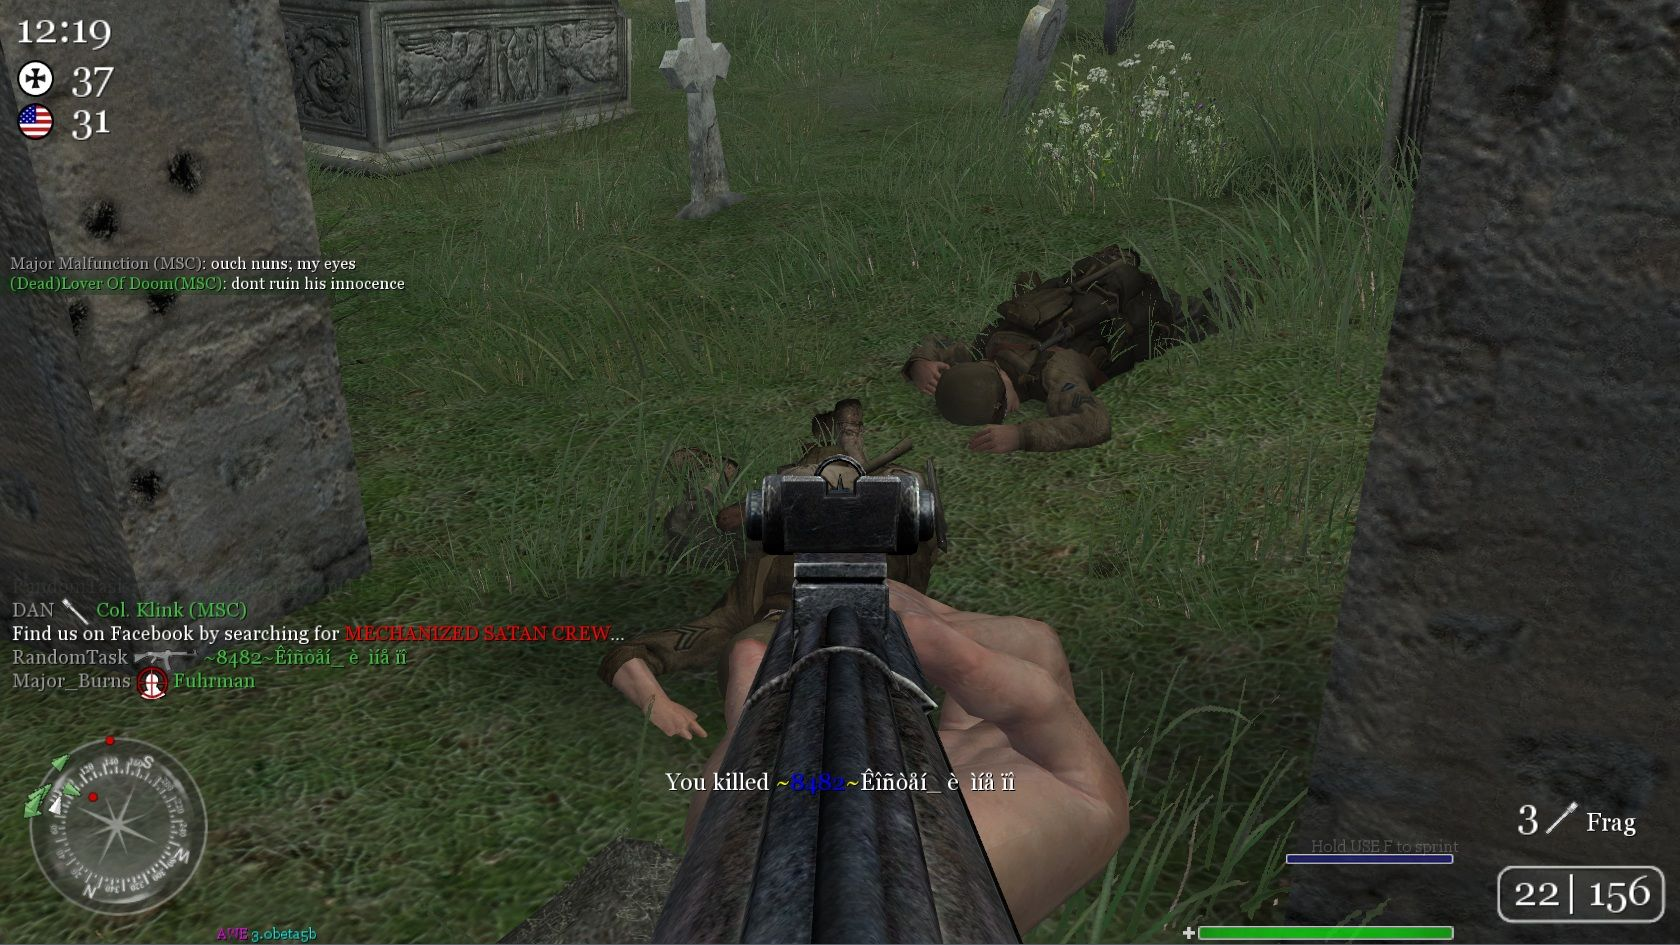 509510-call-of-duty-2-windows-screenshot-another-one-bites-the-dust